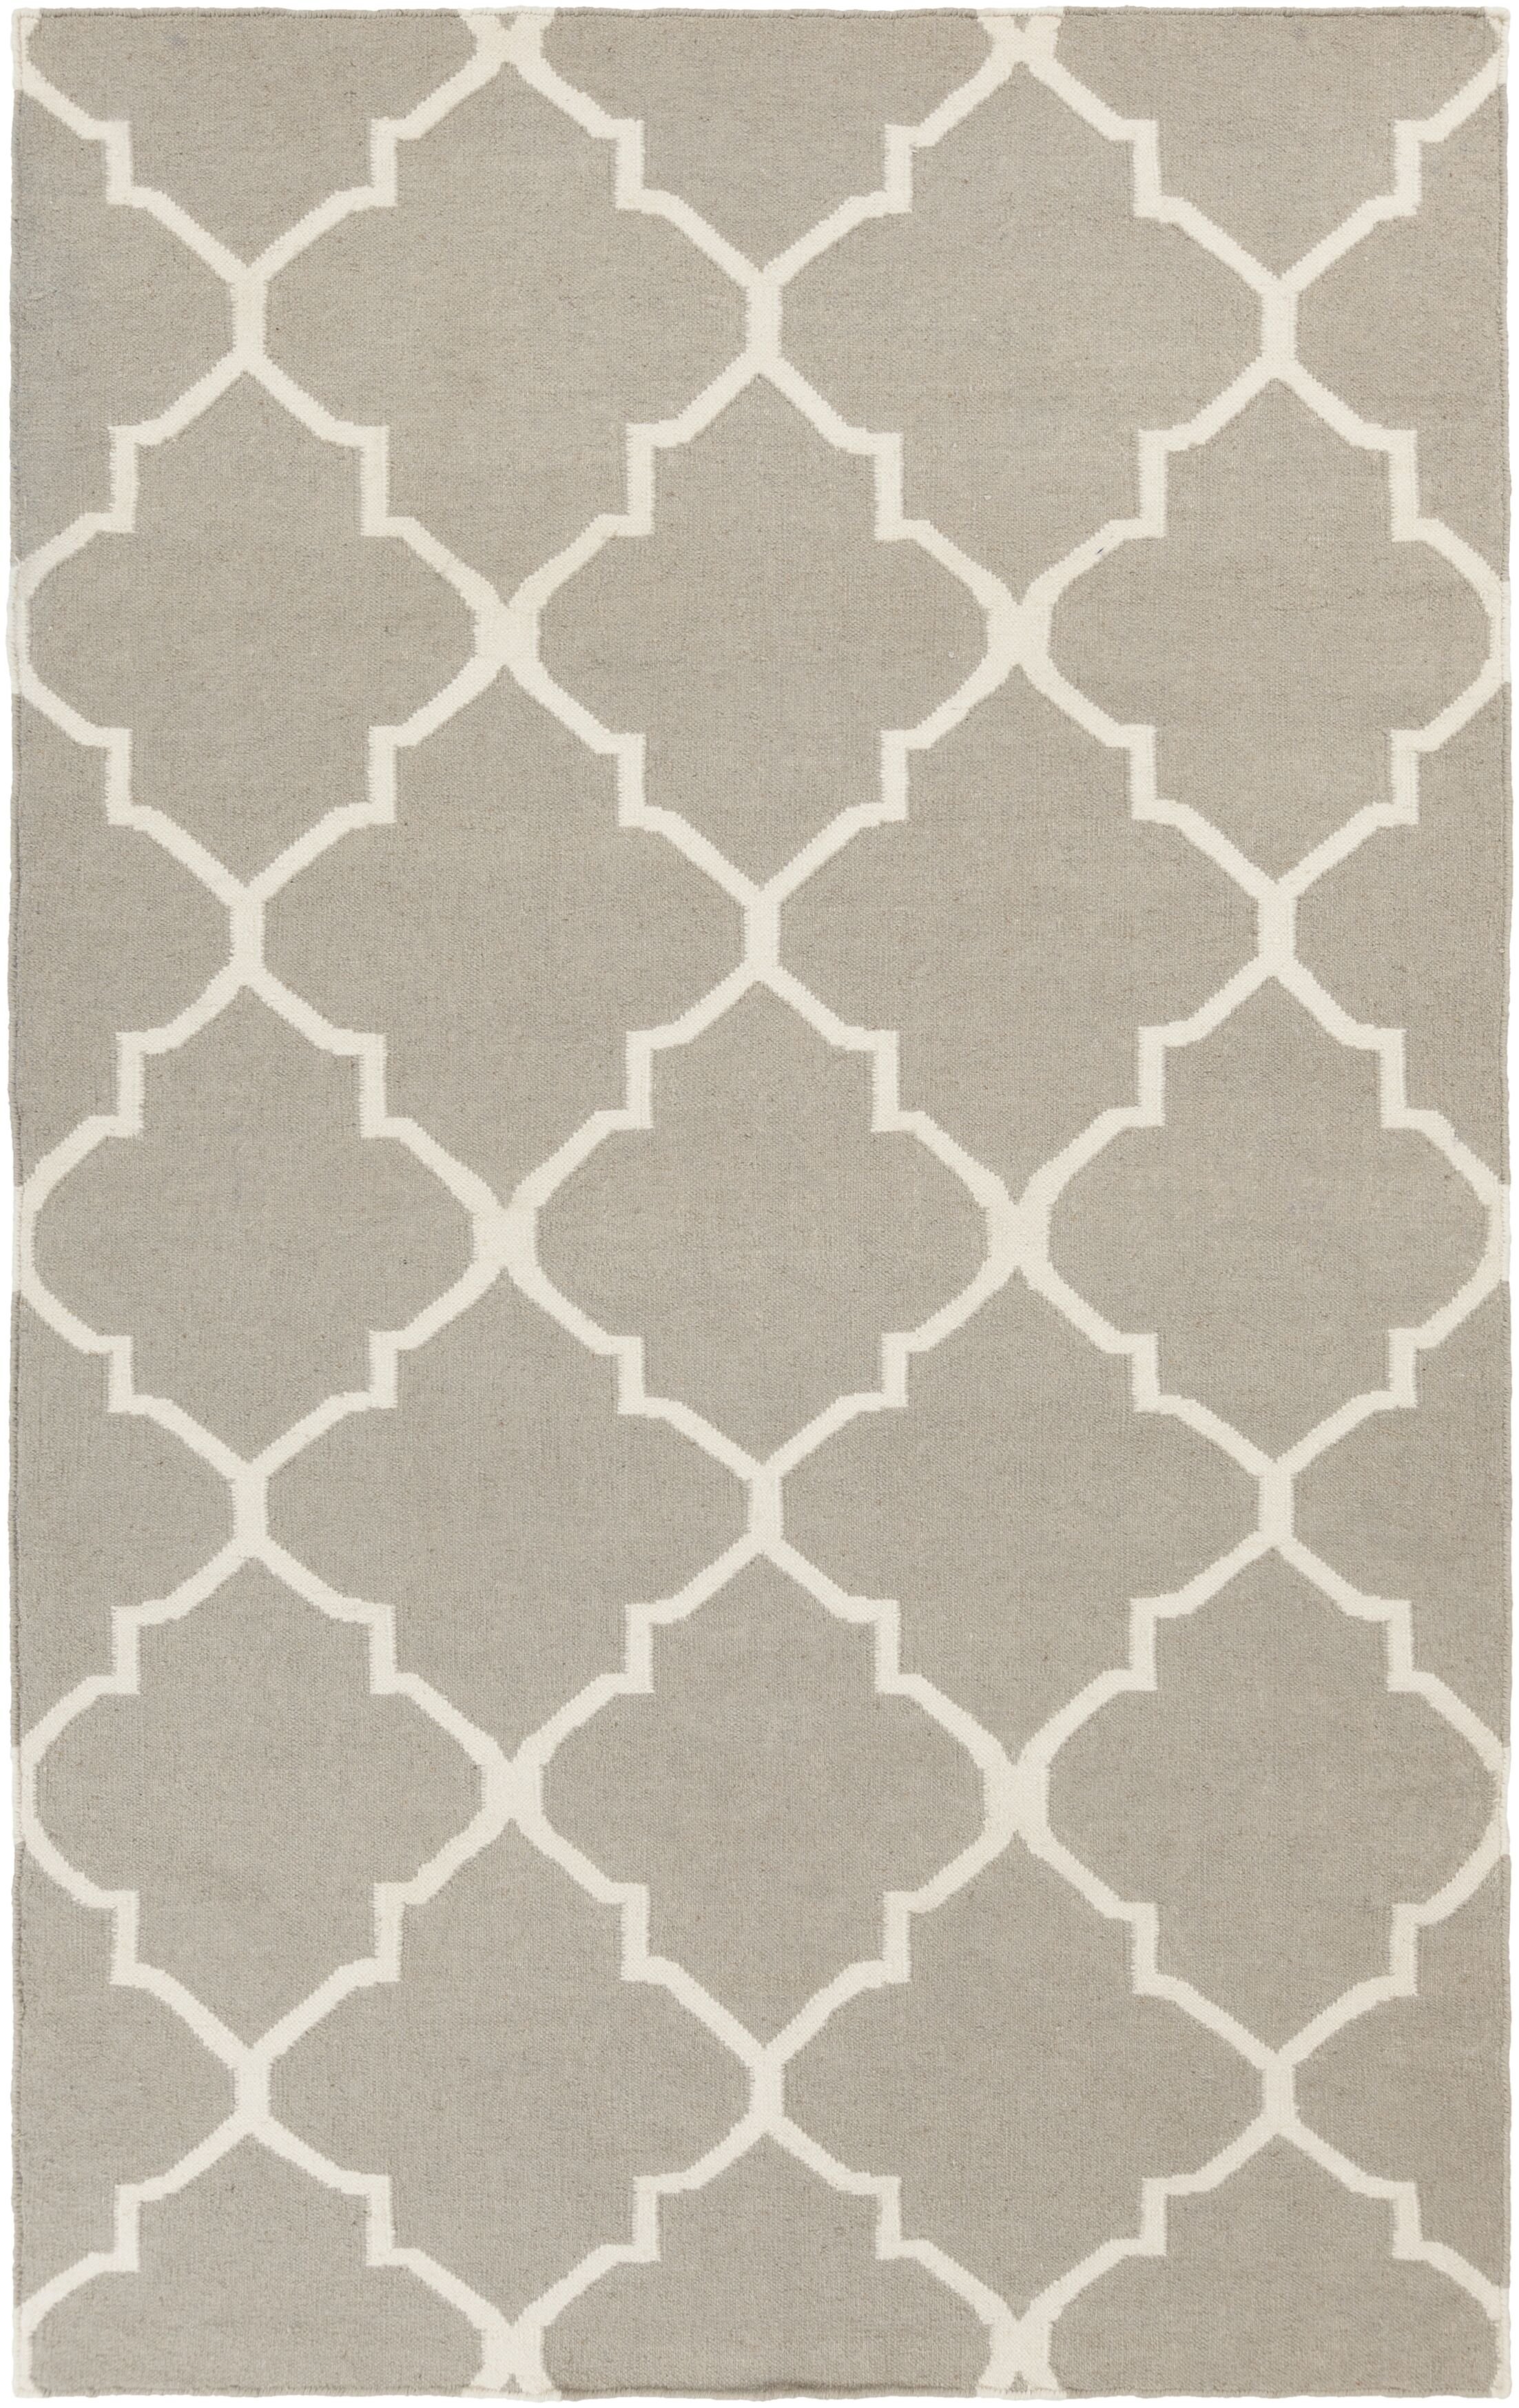 Bangor Grey Geometric Area Rug Rug Size: Rectangle 9' x 12'